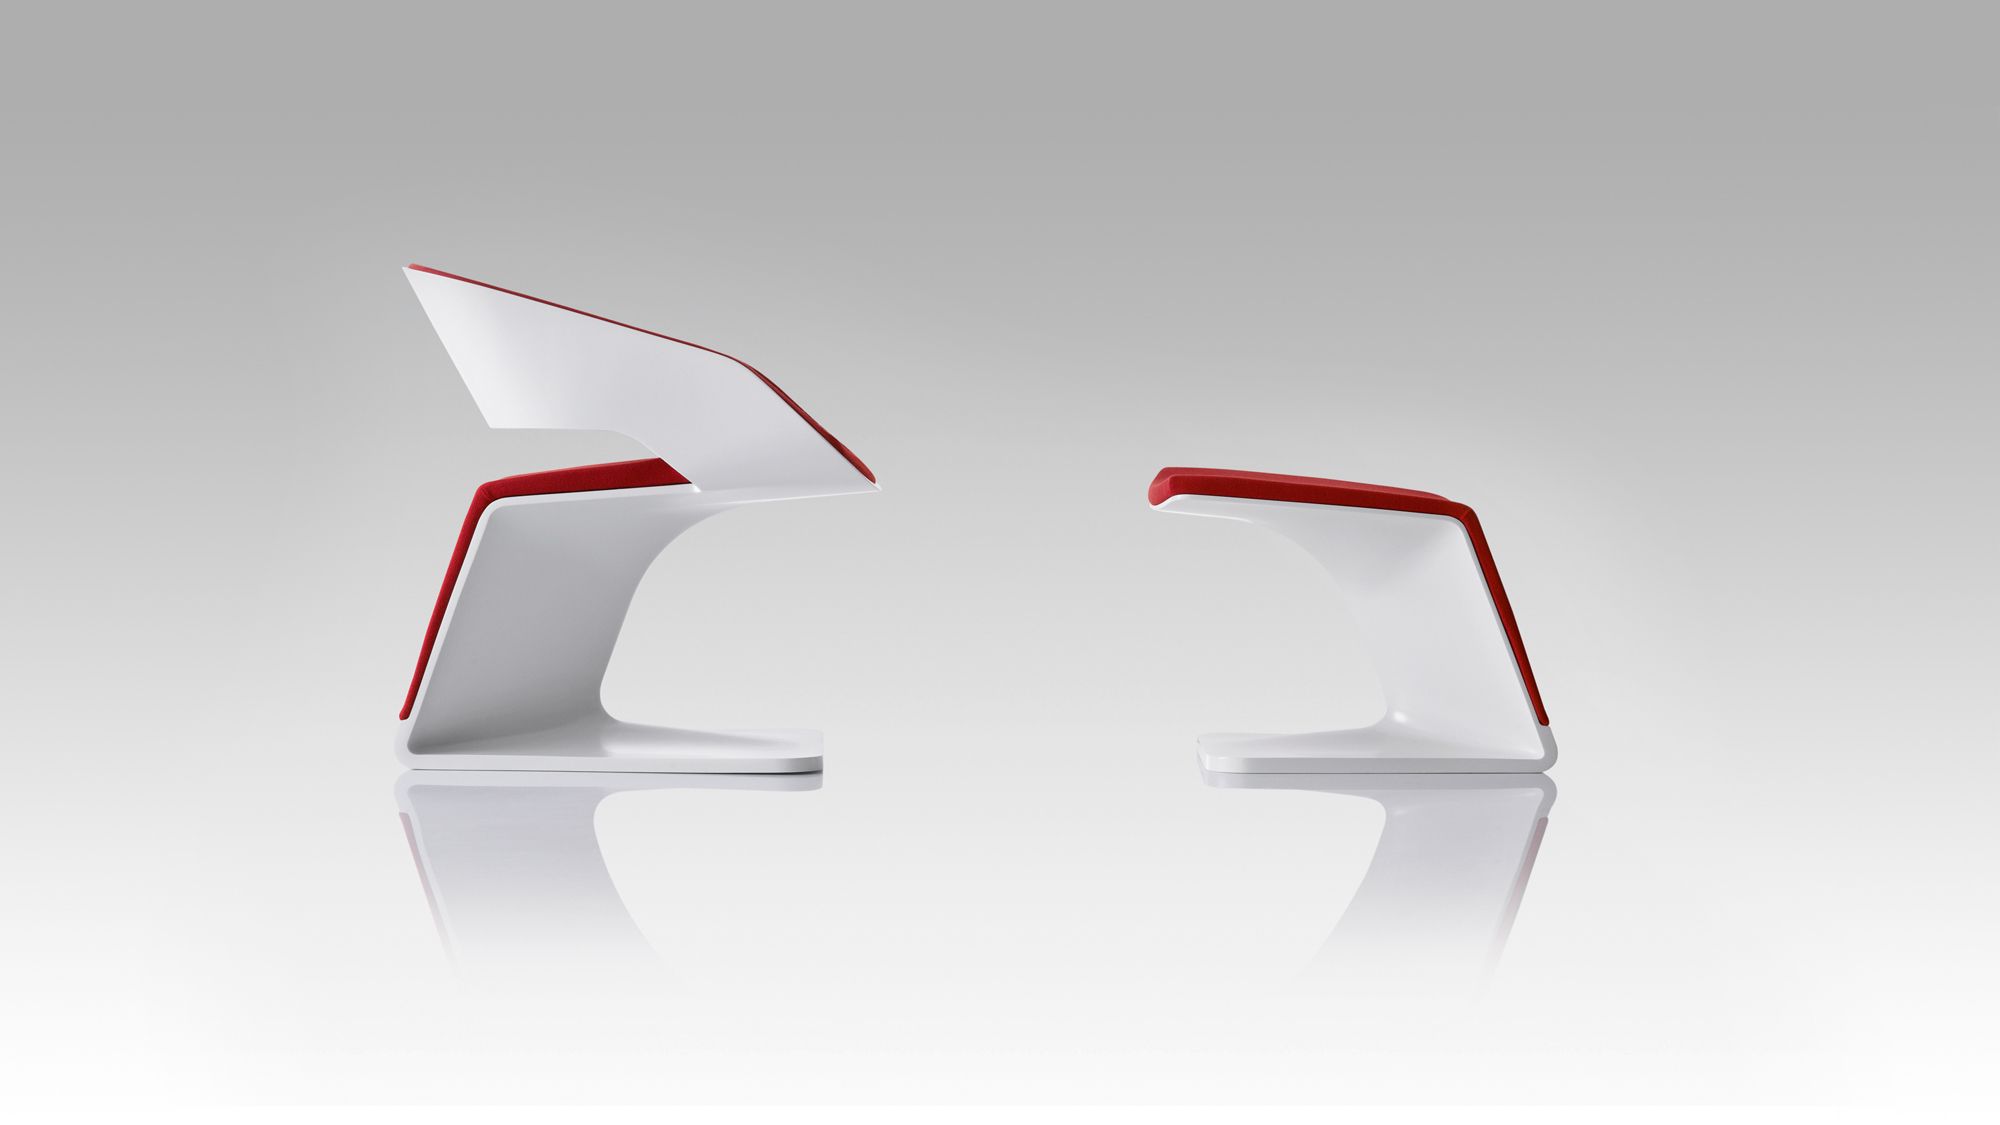 Furniture Design News ora-ïto | product and furniture design, architecture projects